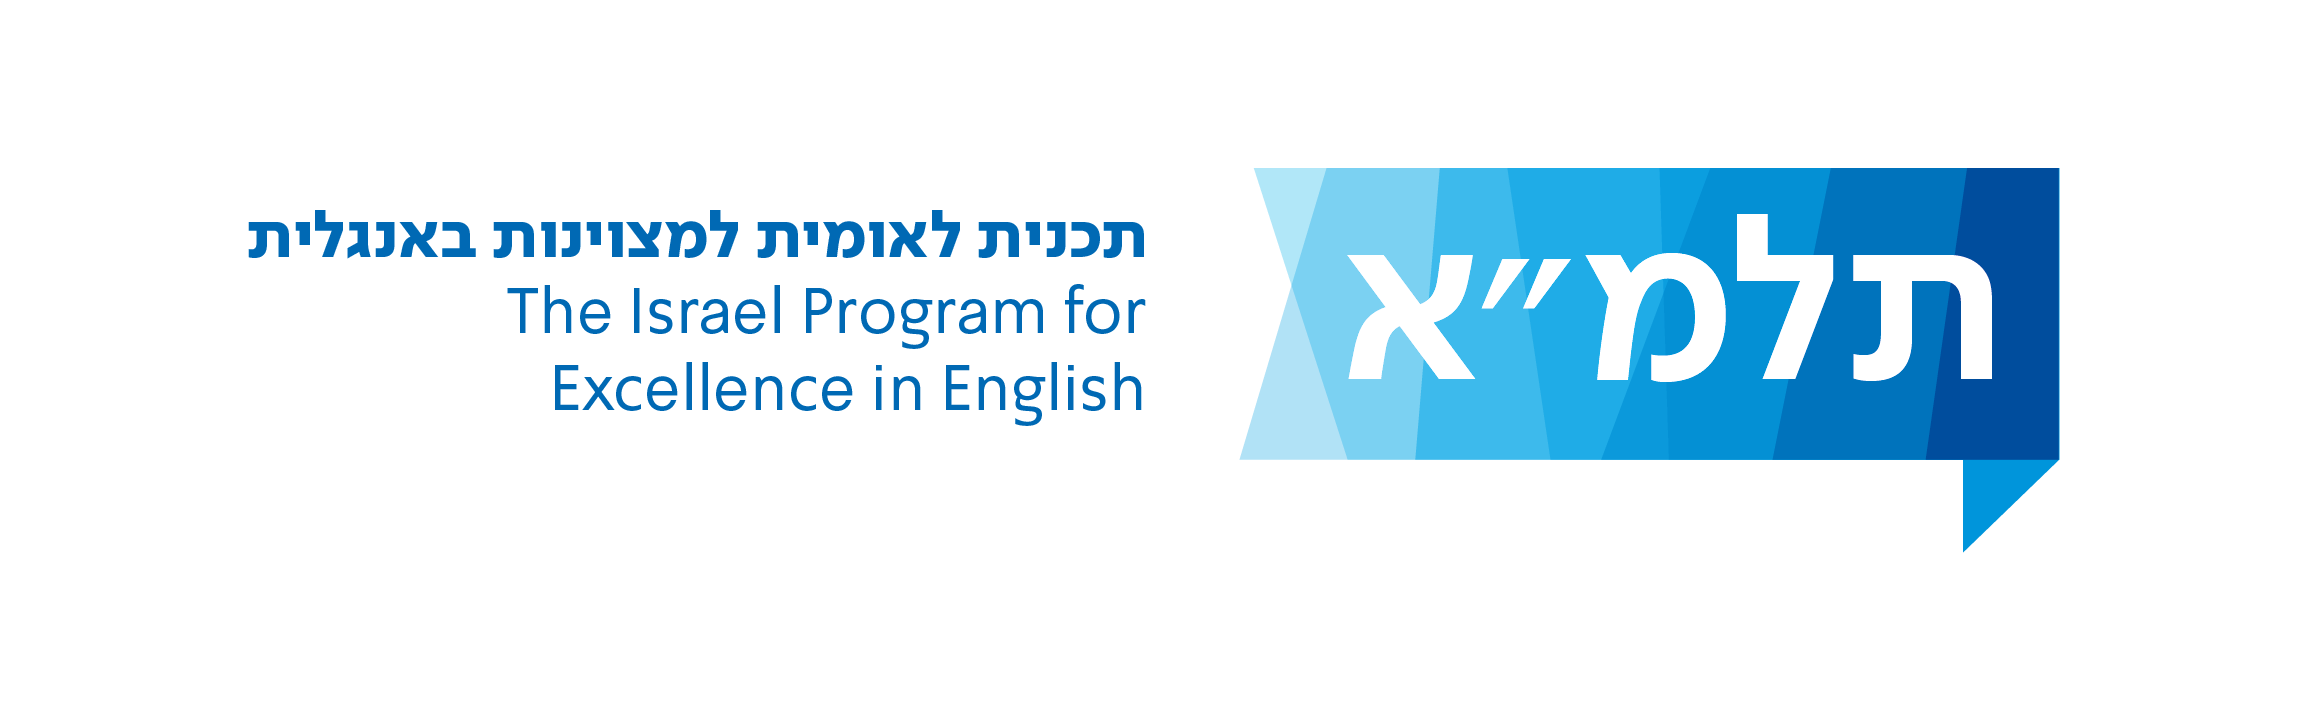 TALMA: The Israel Program for Excellence in English